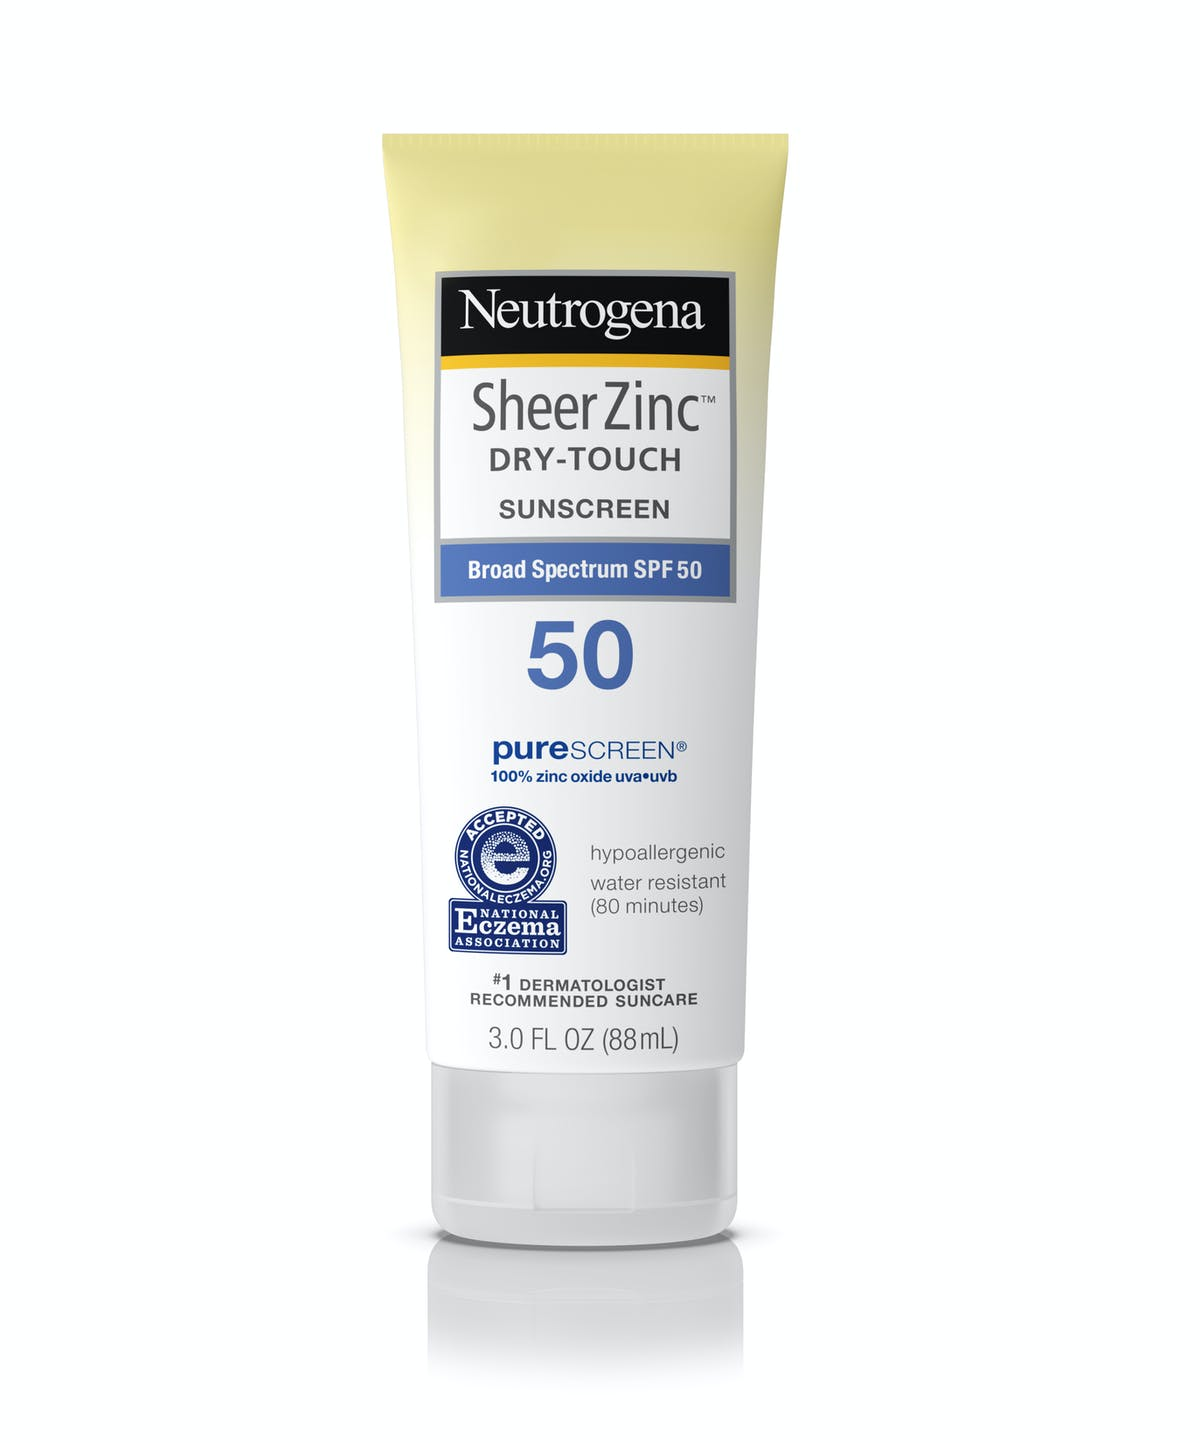 Sheer Zinc Face Suncreen Lotion Broad Spectrum Spf 50 Neutrogena Sunscreen Spf50 Dry Touch